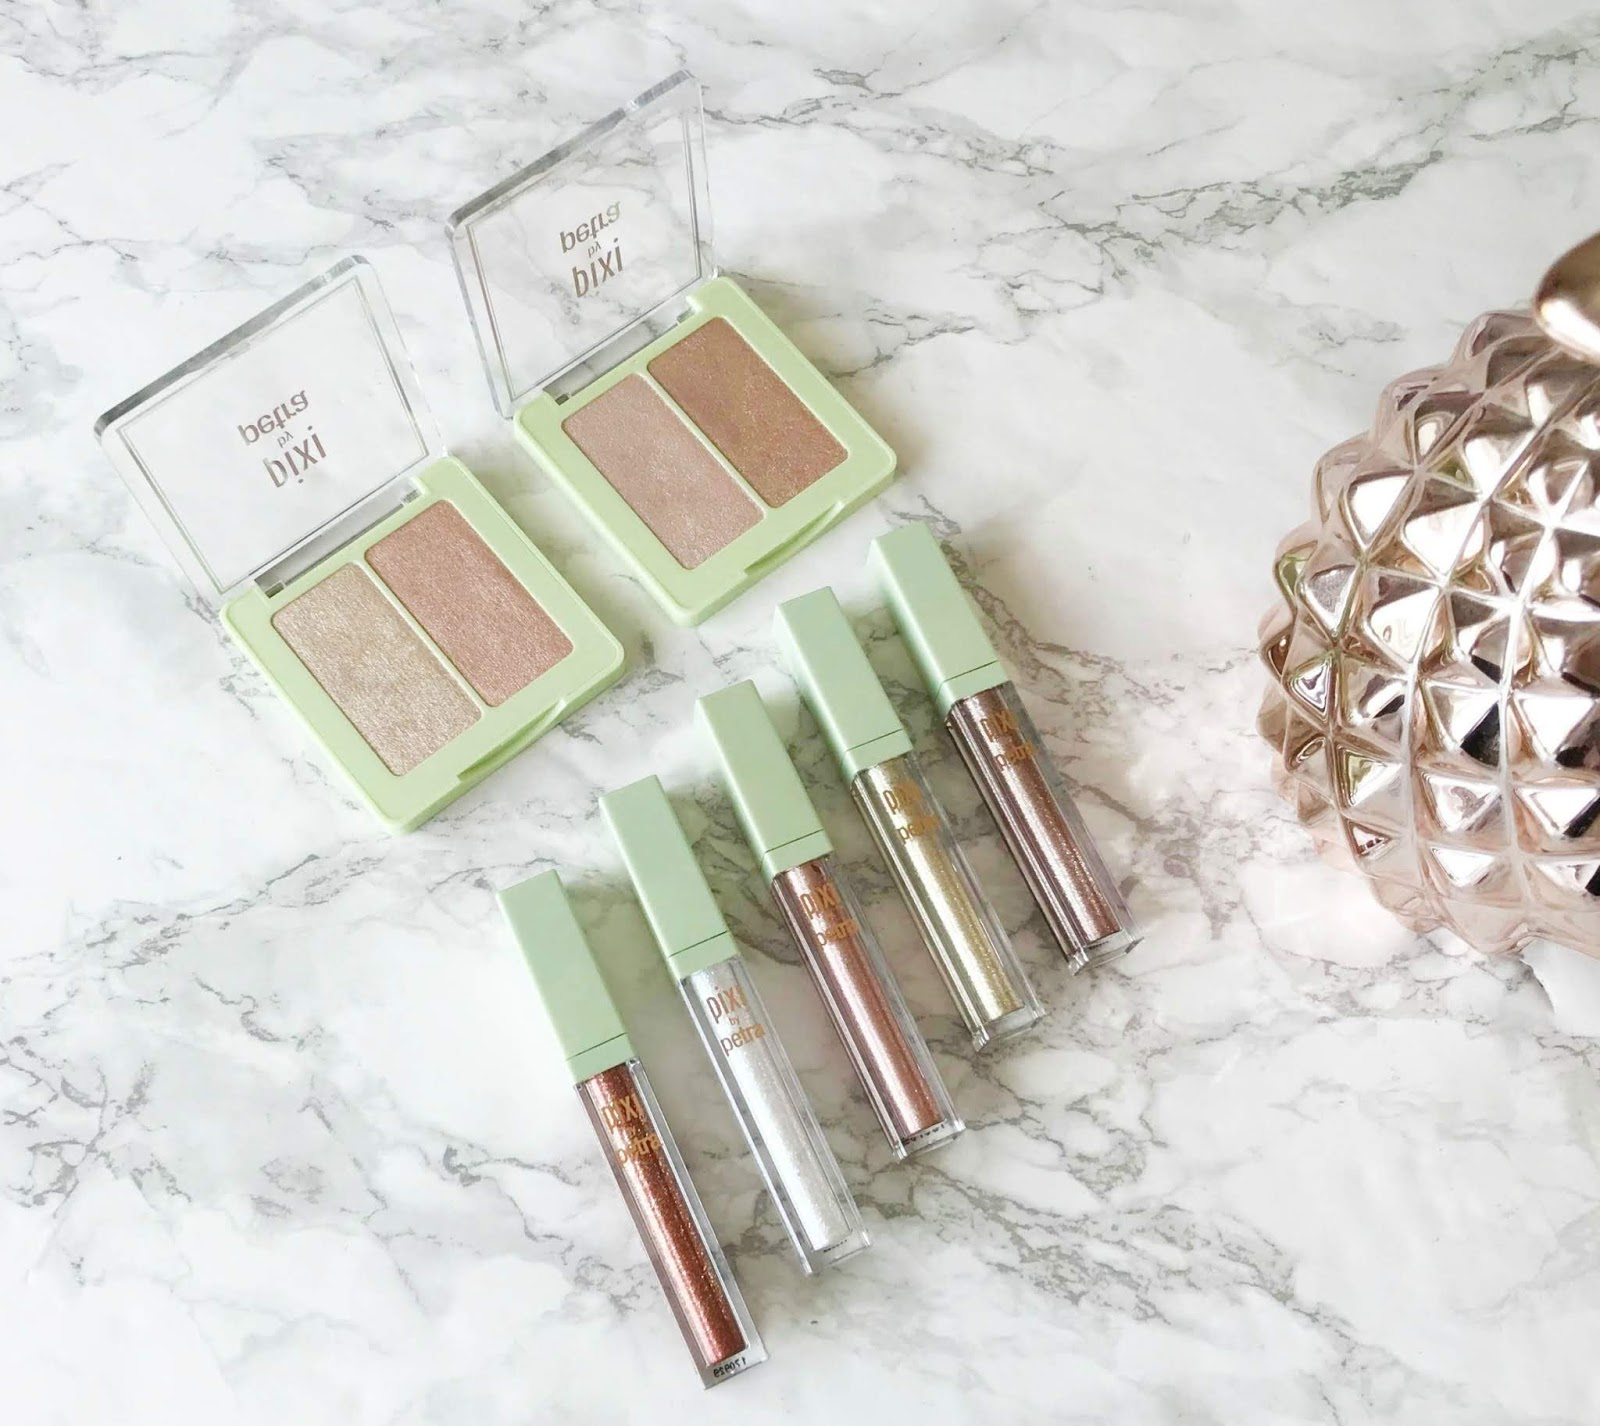 Pixi Glowy-Glossamer Duo Review & Swatches, Pixi Liquid Fairy Lights Review & Swatches